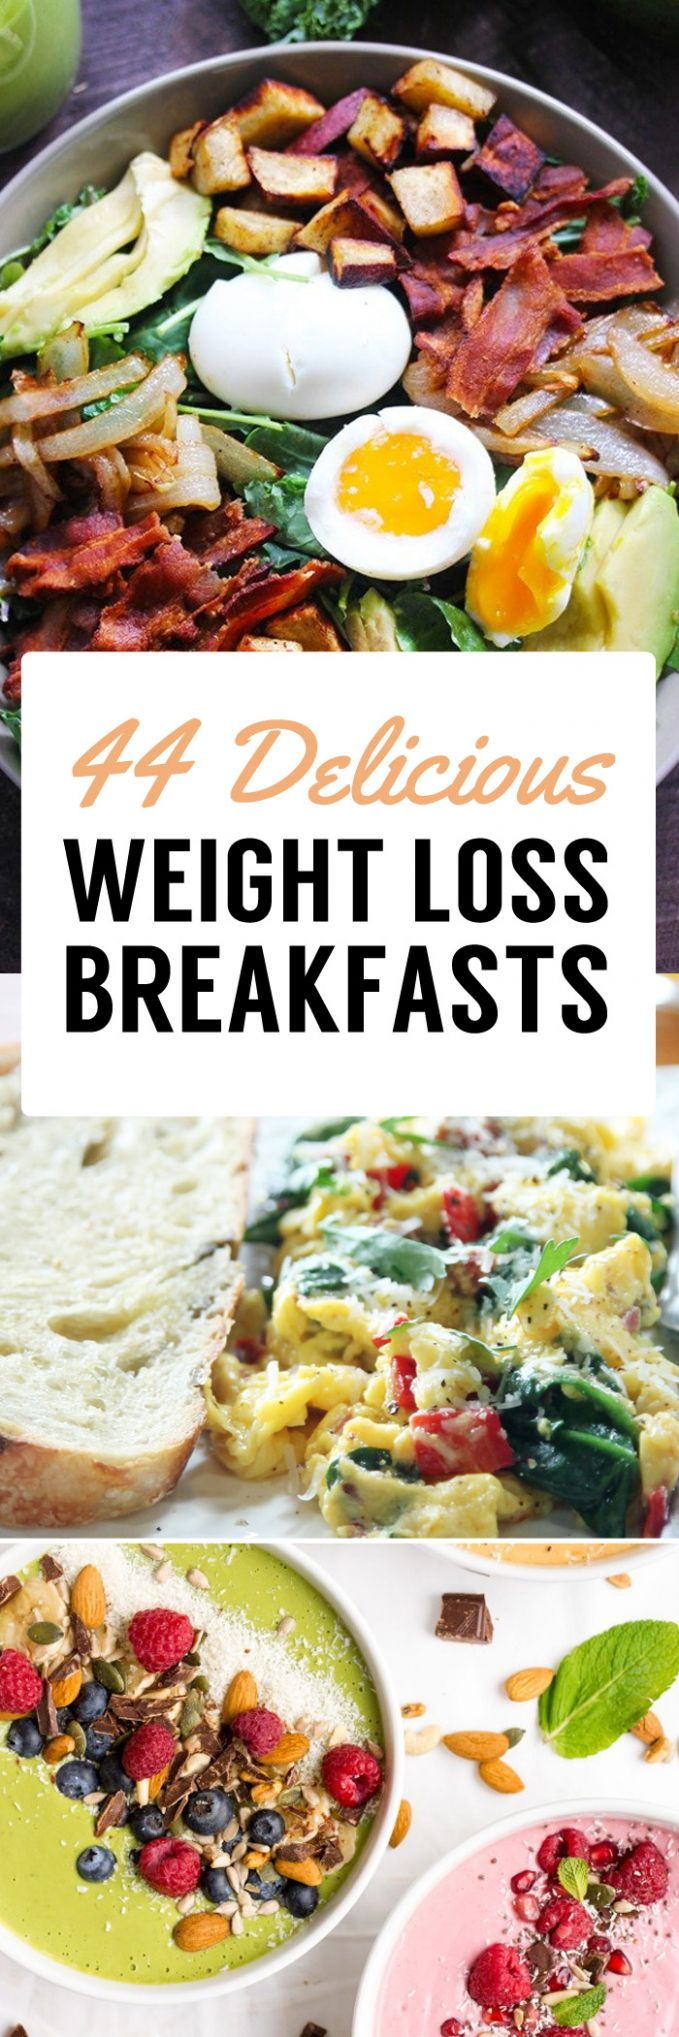 11 Weight Loss Breakfast Recipes To Jumpstart Your Fat Burning Day ..